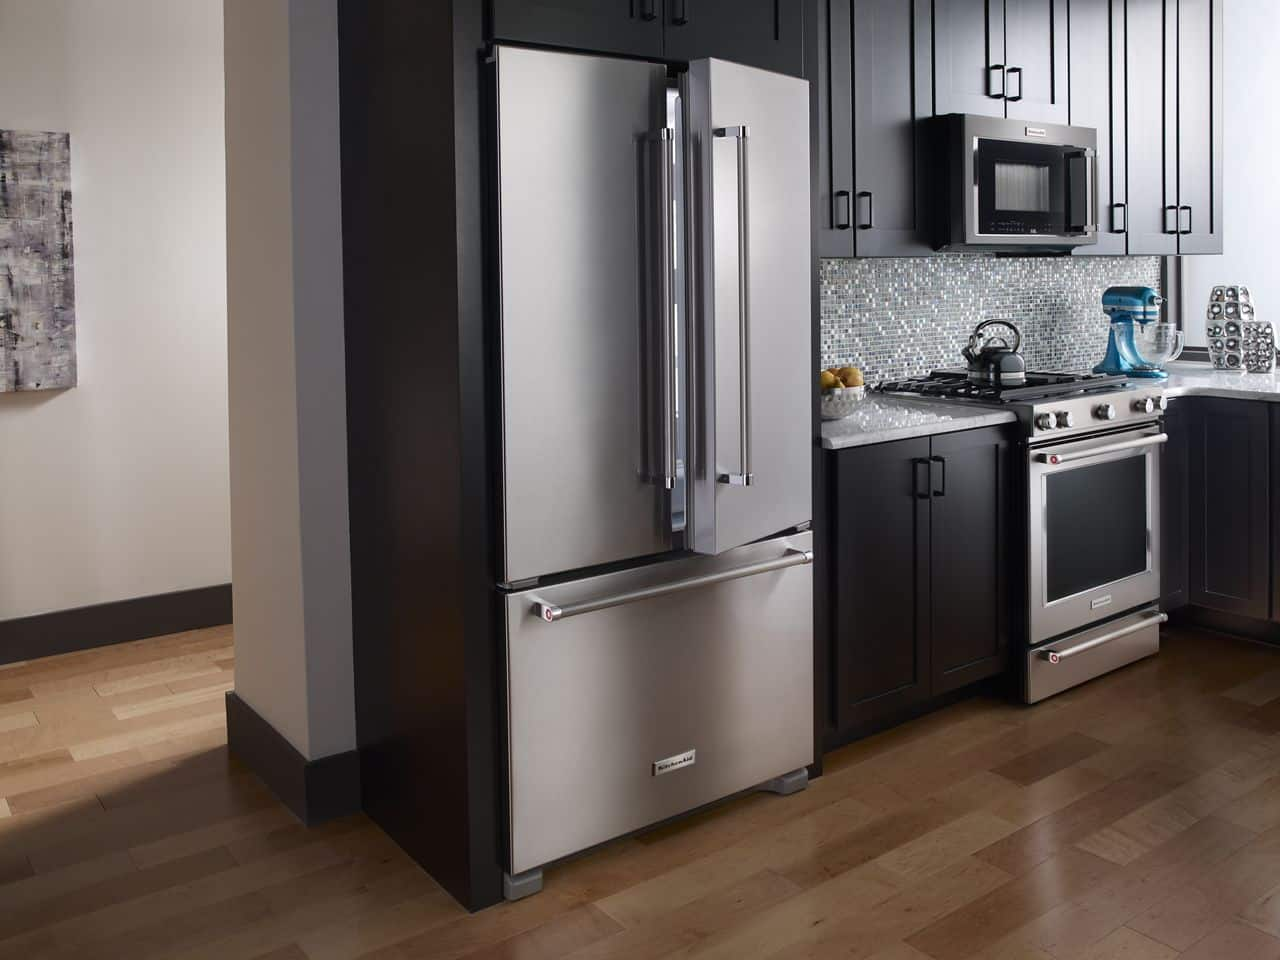 Appliance Repair In Cleveland Have Your Refrigerator